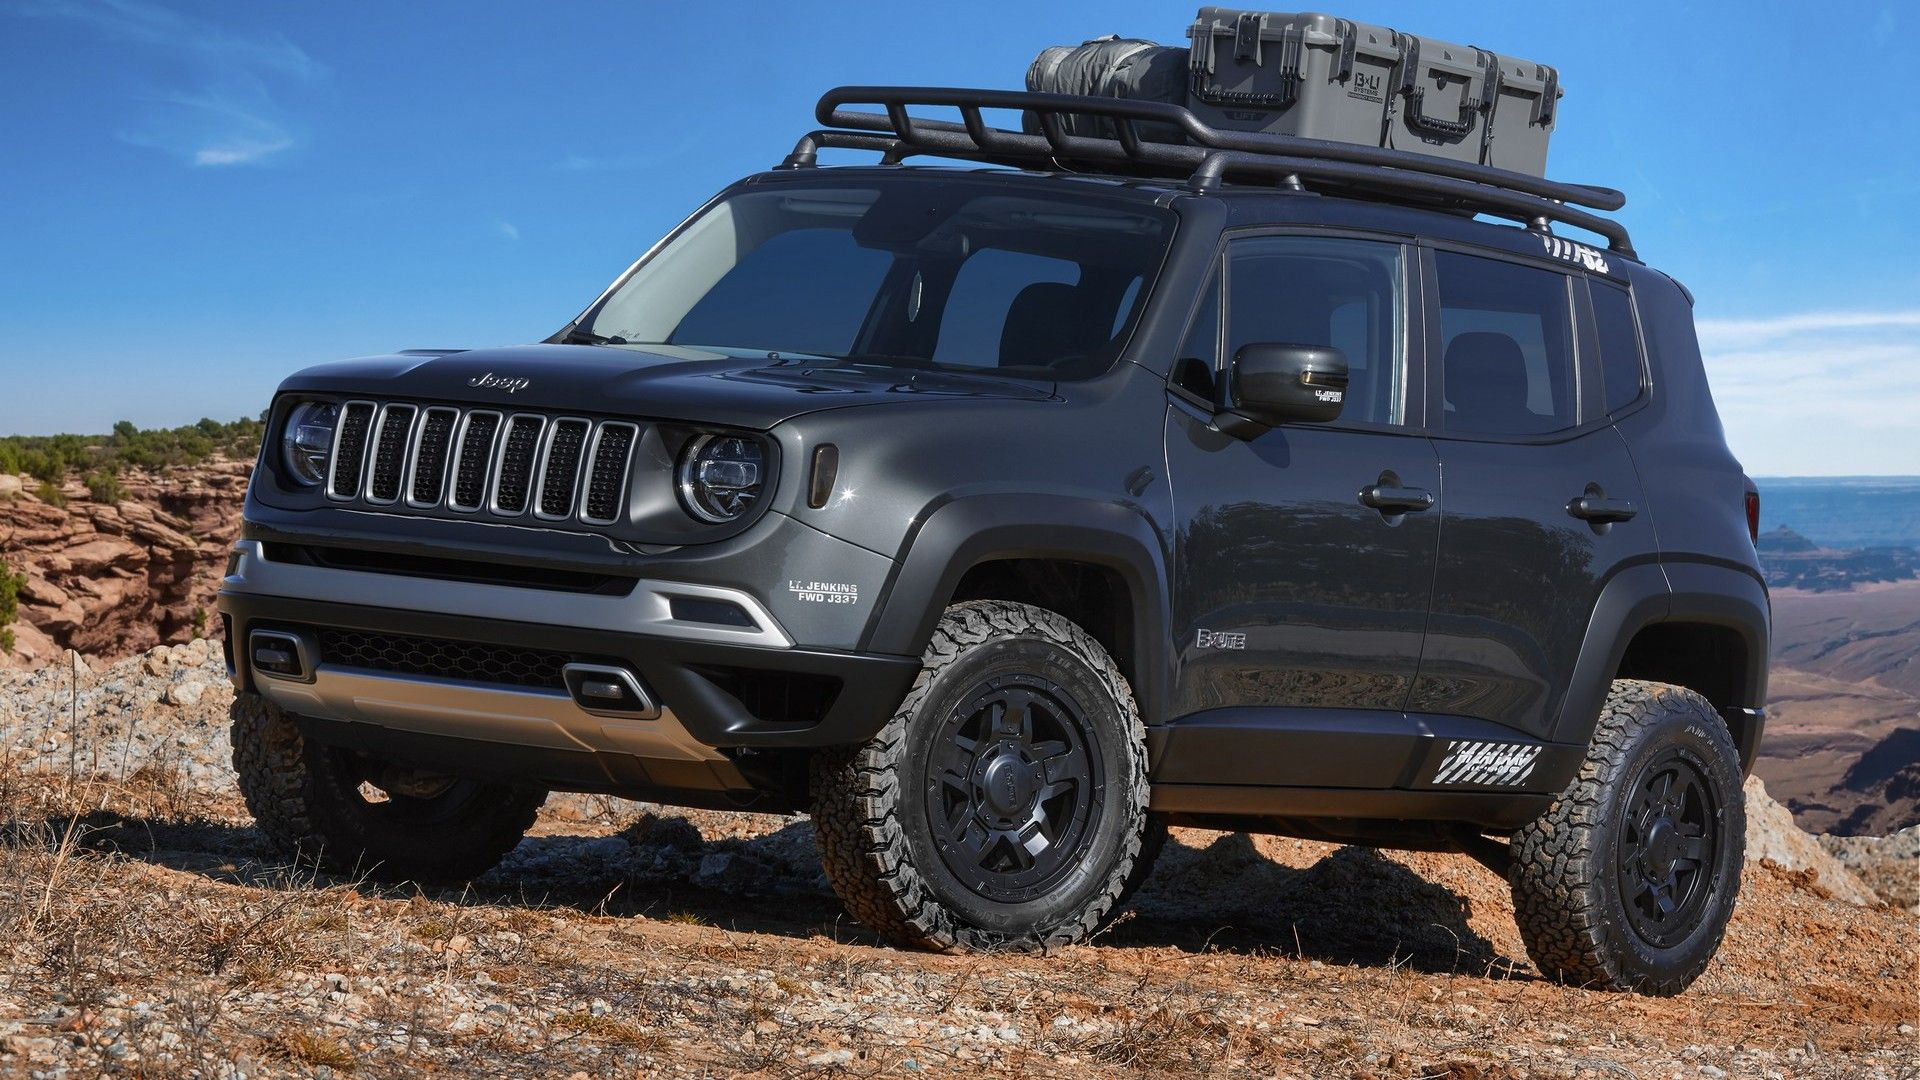 2018 Jeep Renegade Suv Photo And Video Gallery Jeep Renegade 2019 Nera